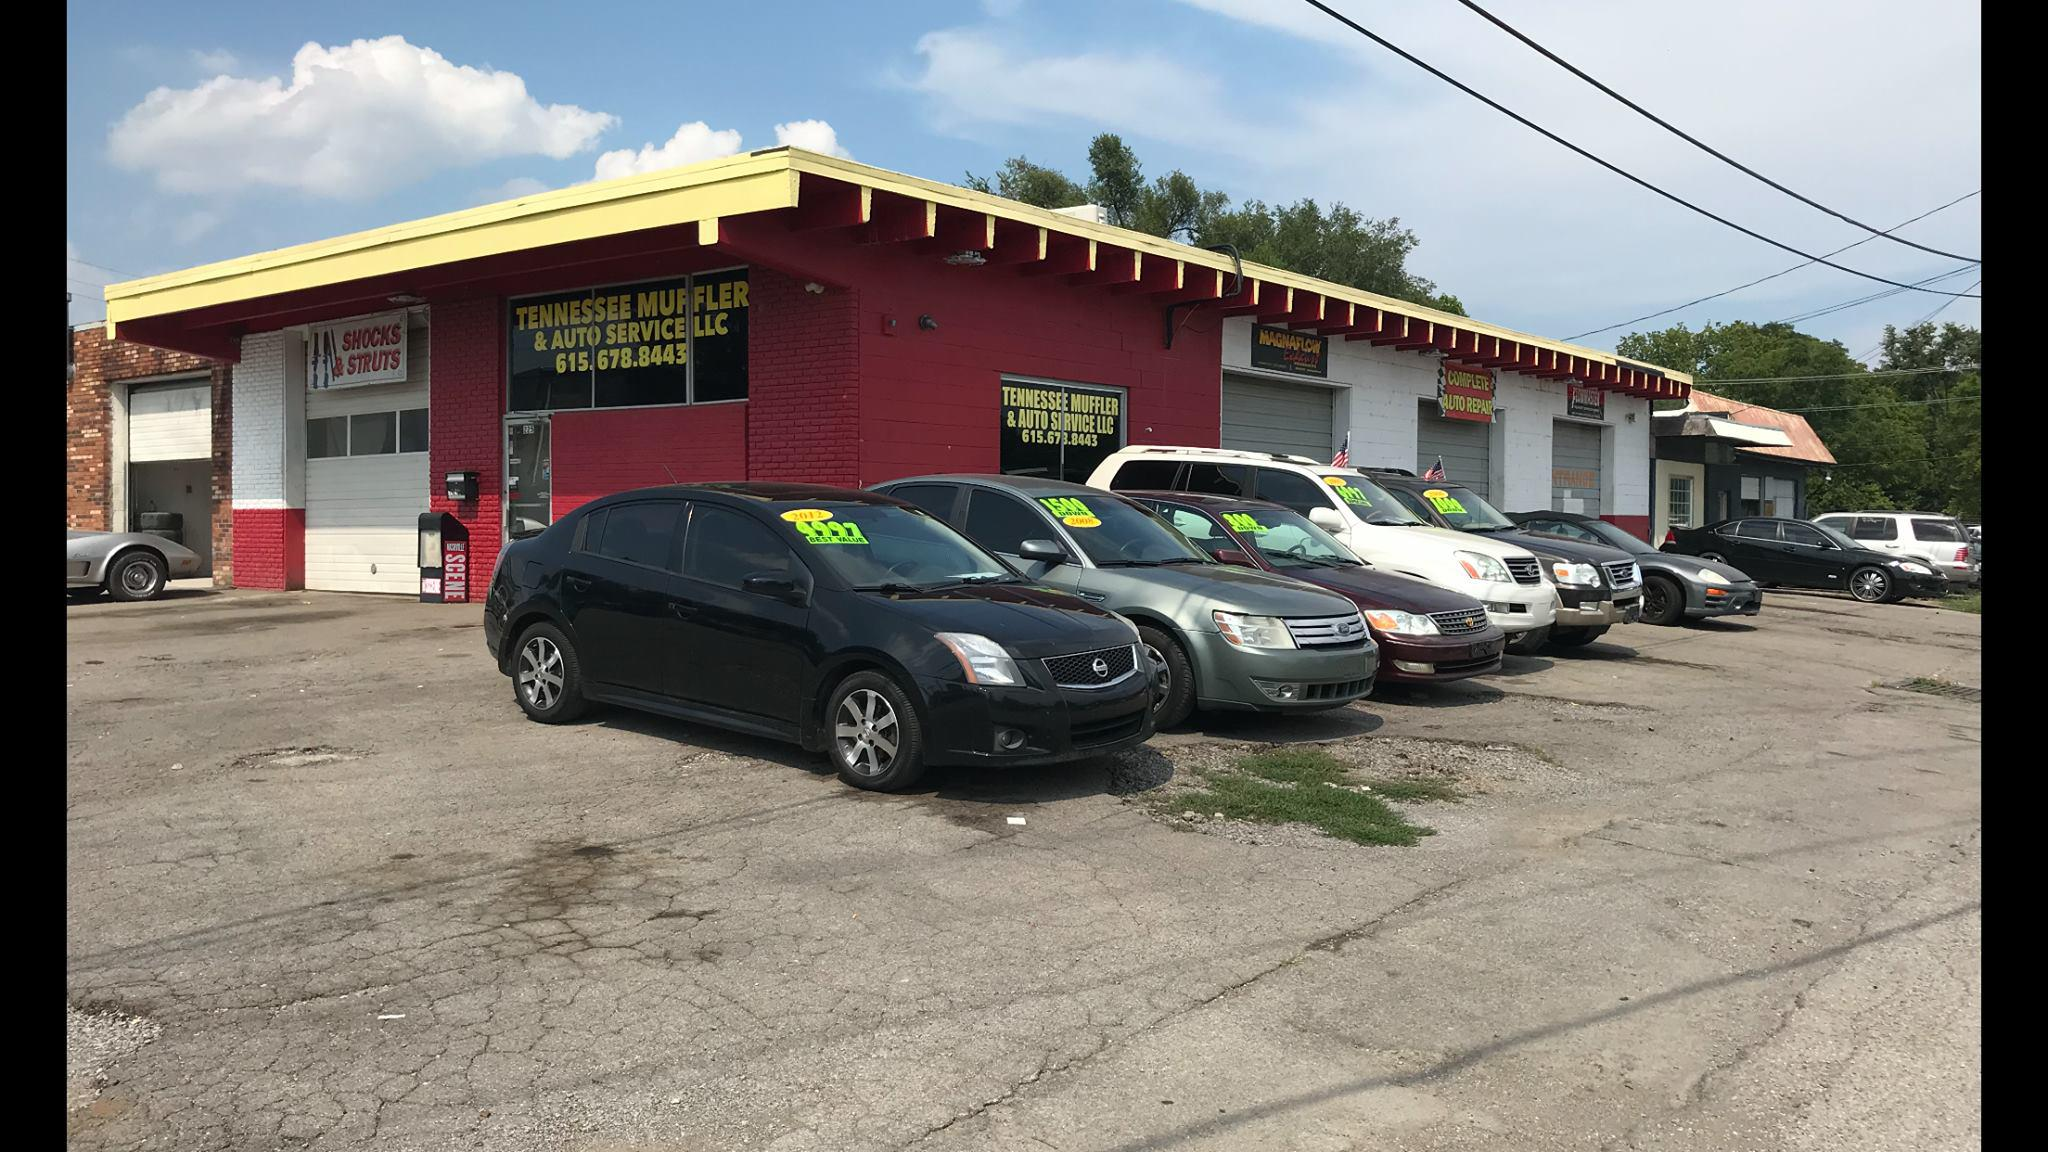 Tennessee Muffler and Auto Service